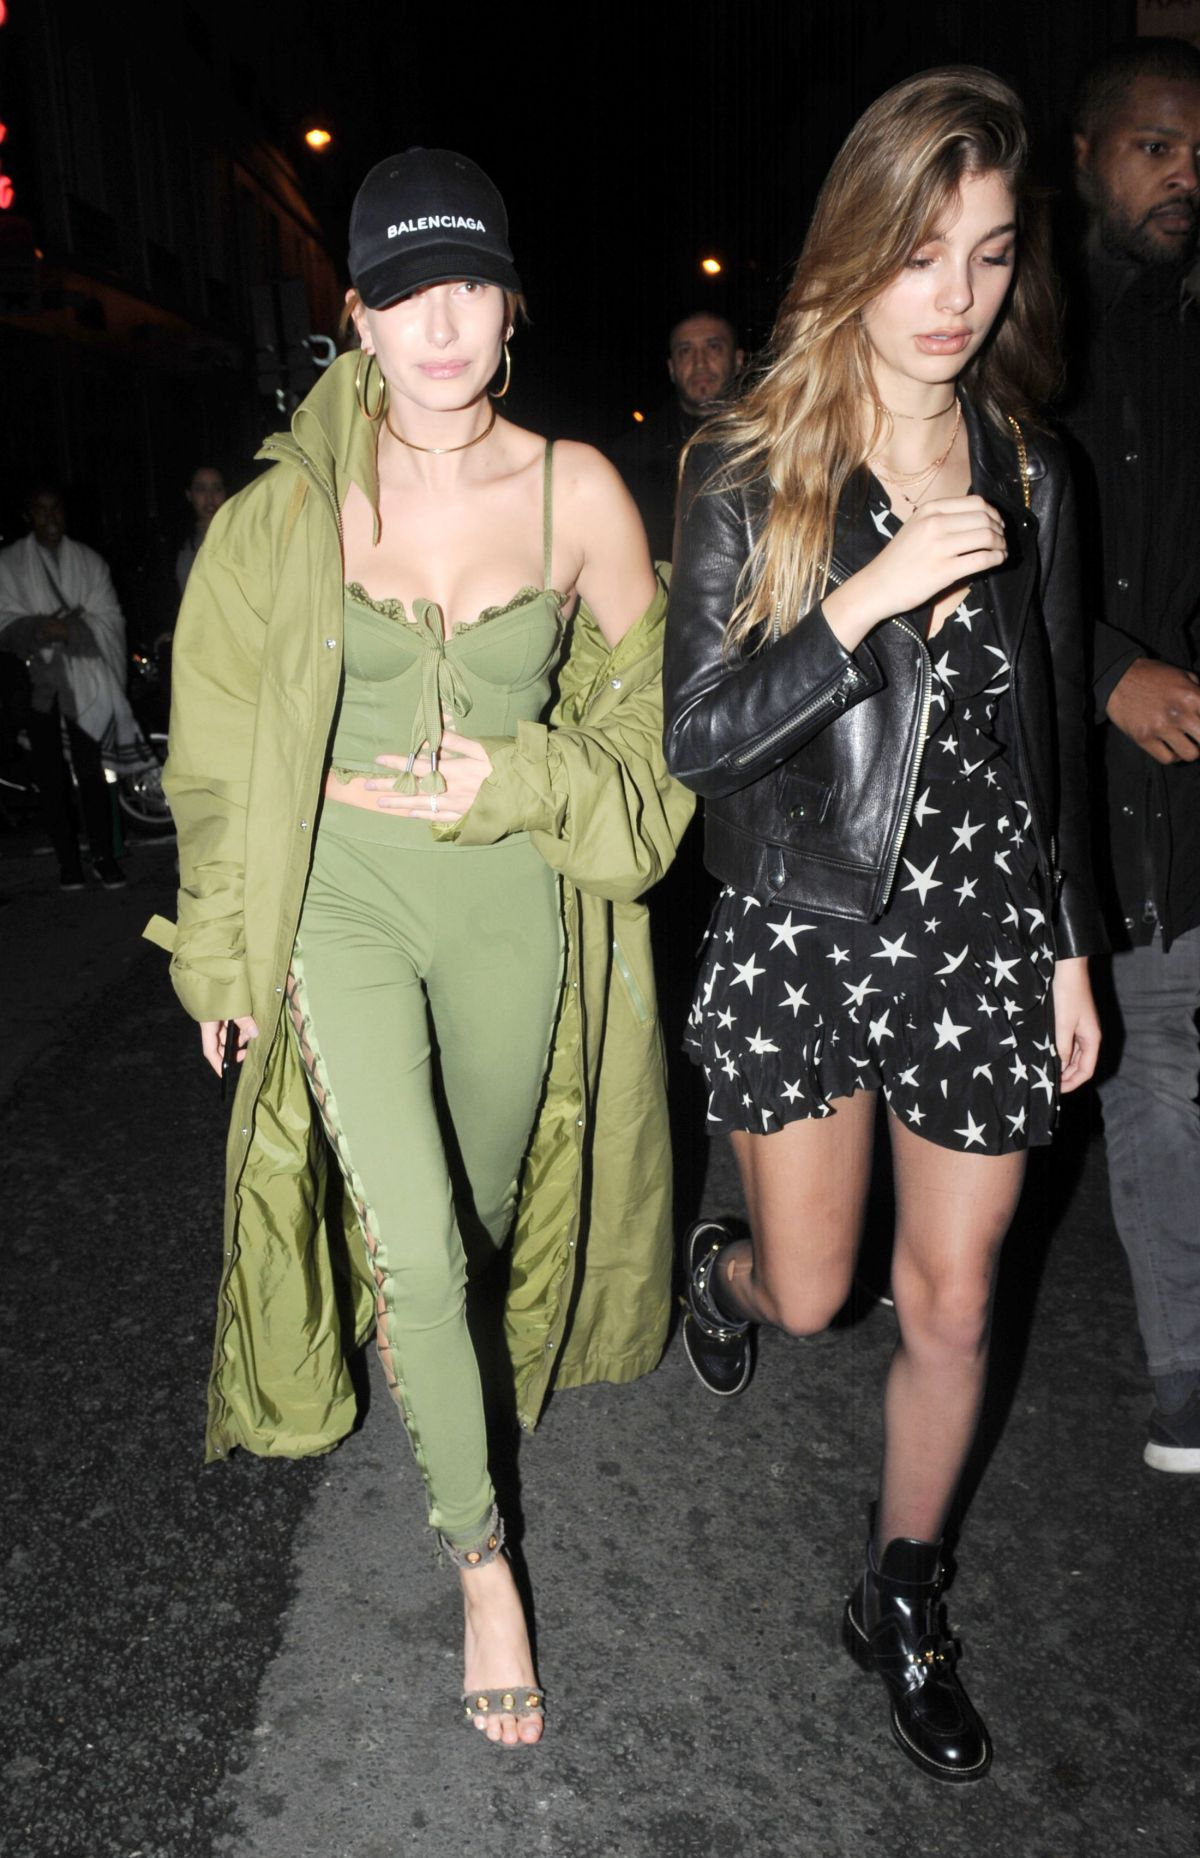 hailey baldwin and cami morrone leavies pink pariadie strip club in paris 03 01 2017 fashion. Black Bedroom Furniture Sets. Home Design Ideas